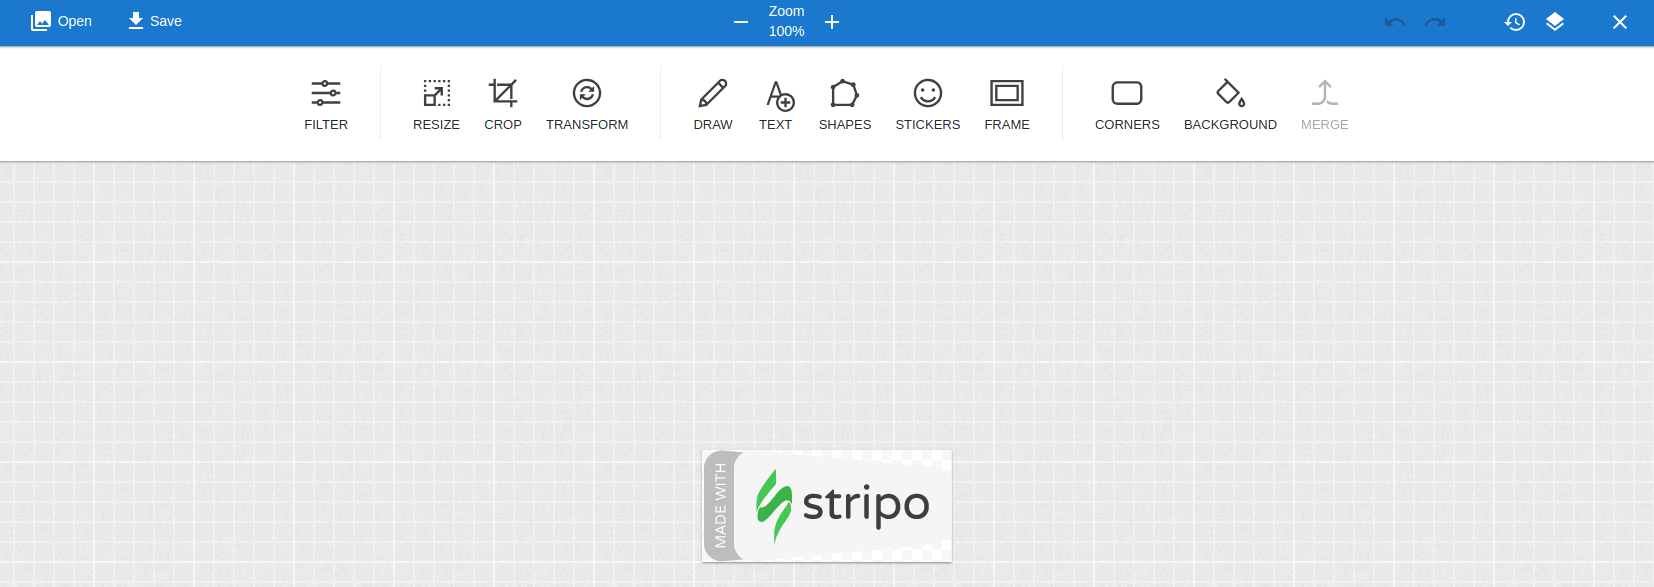 Stripo built-in image editor designing email templates